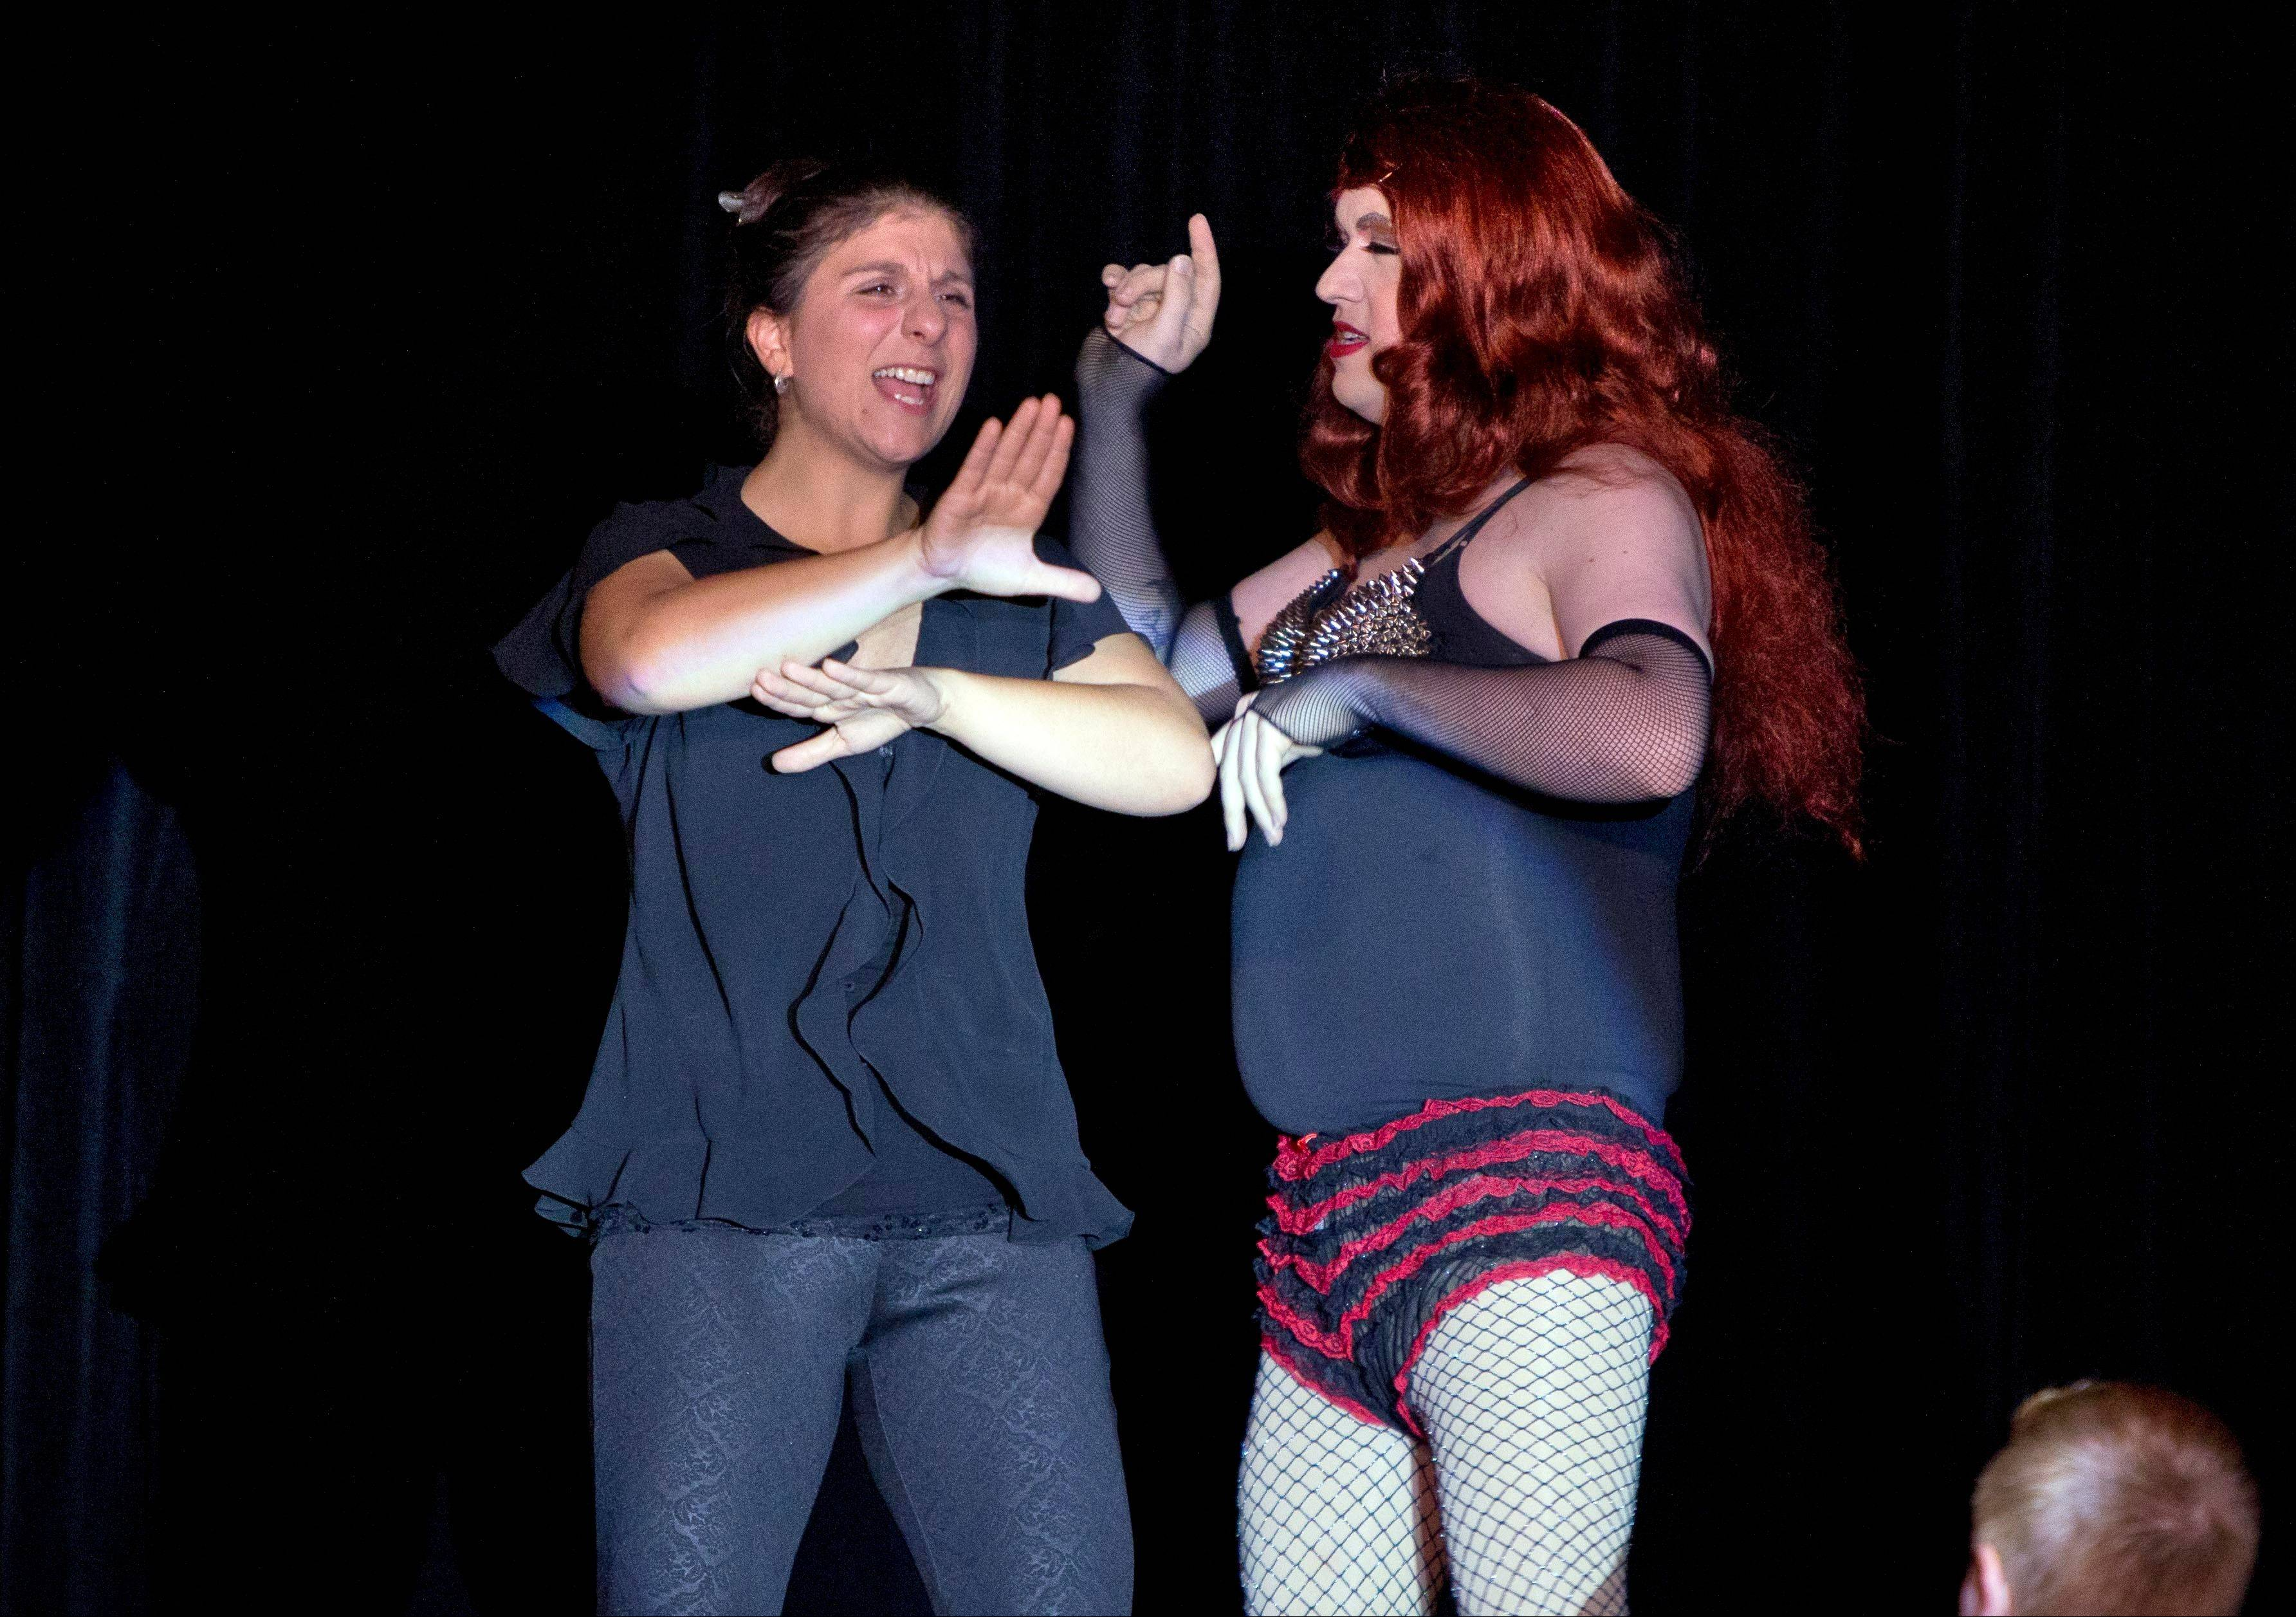 Holly Maniatty, left, an American Sign Language interpreter, signs during a performance by a contestant in the the Royal Majesty Drag Show and Competition in Portland, Maine. The 33-year-old has become an Internet sensation for the energetic way she uses dance moves, body language and American Sign Language to bring musical performances alive for those who can�t hear.